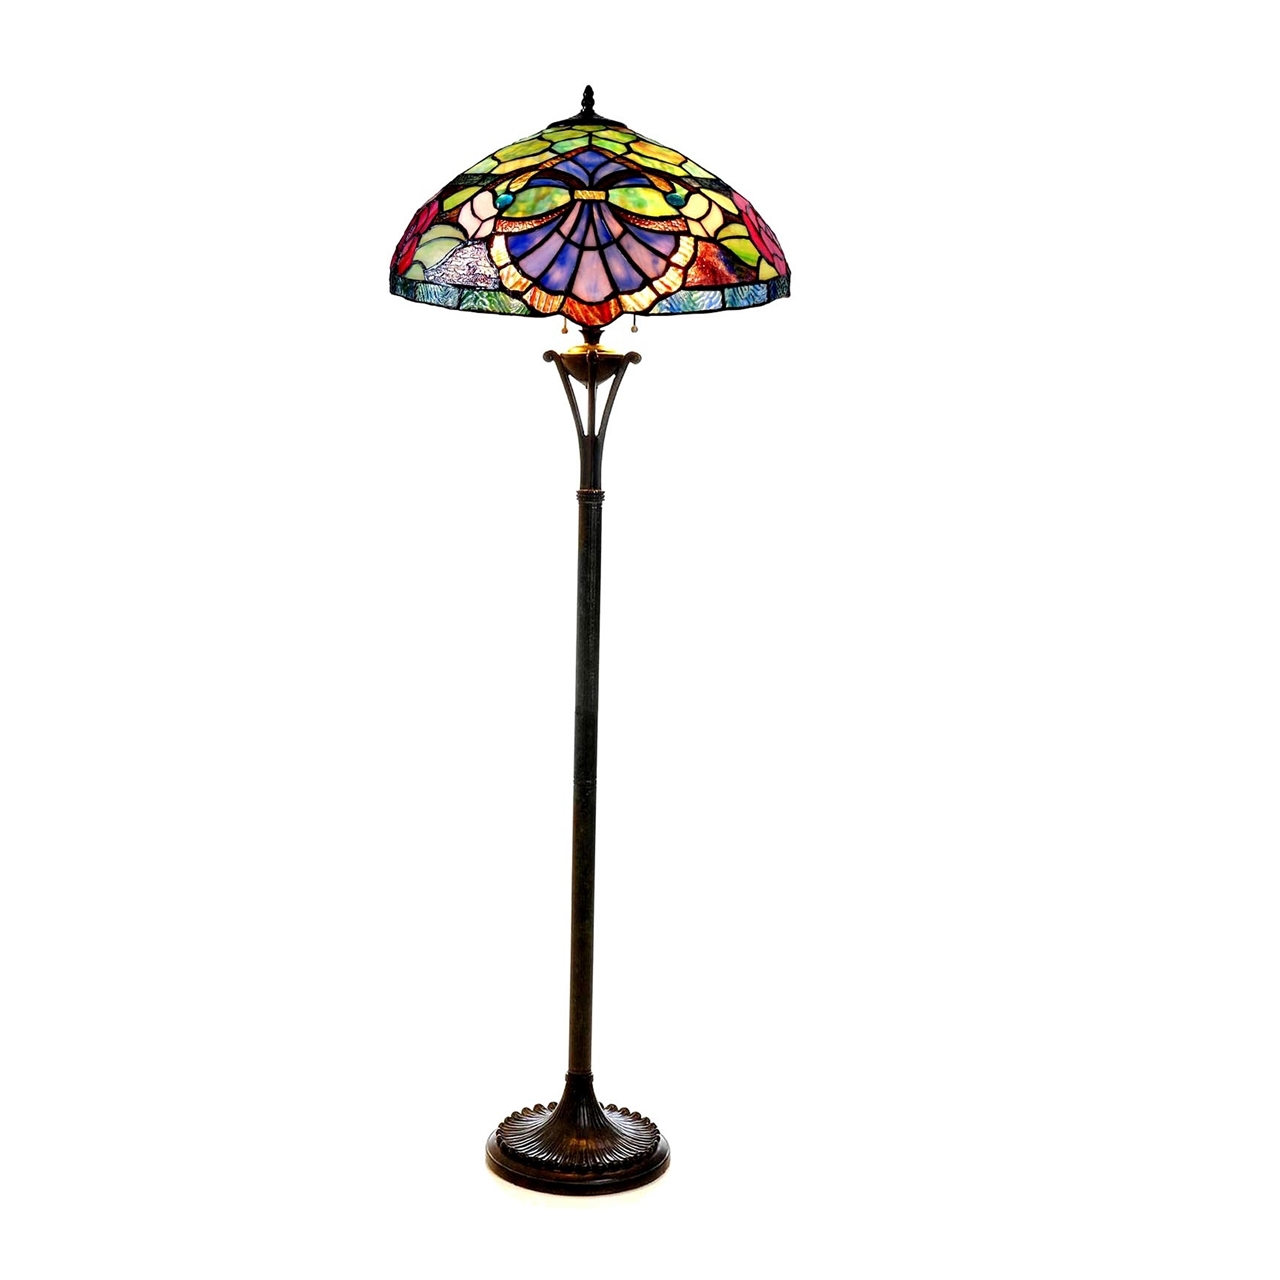 Chloe lighting inc tiffany lamp tiffany lamps tiffany style lamp picture of ch18982gv18 fl2 floor lamp aloadofball Images